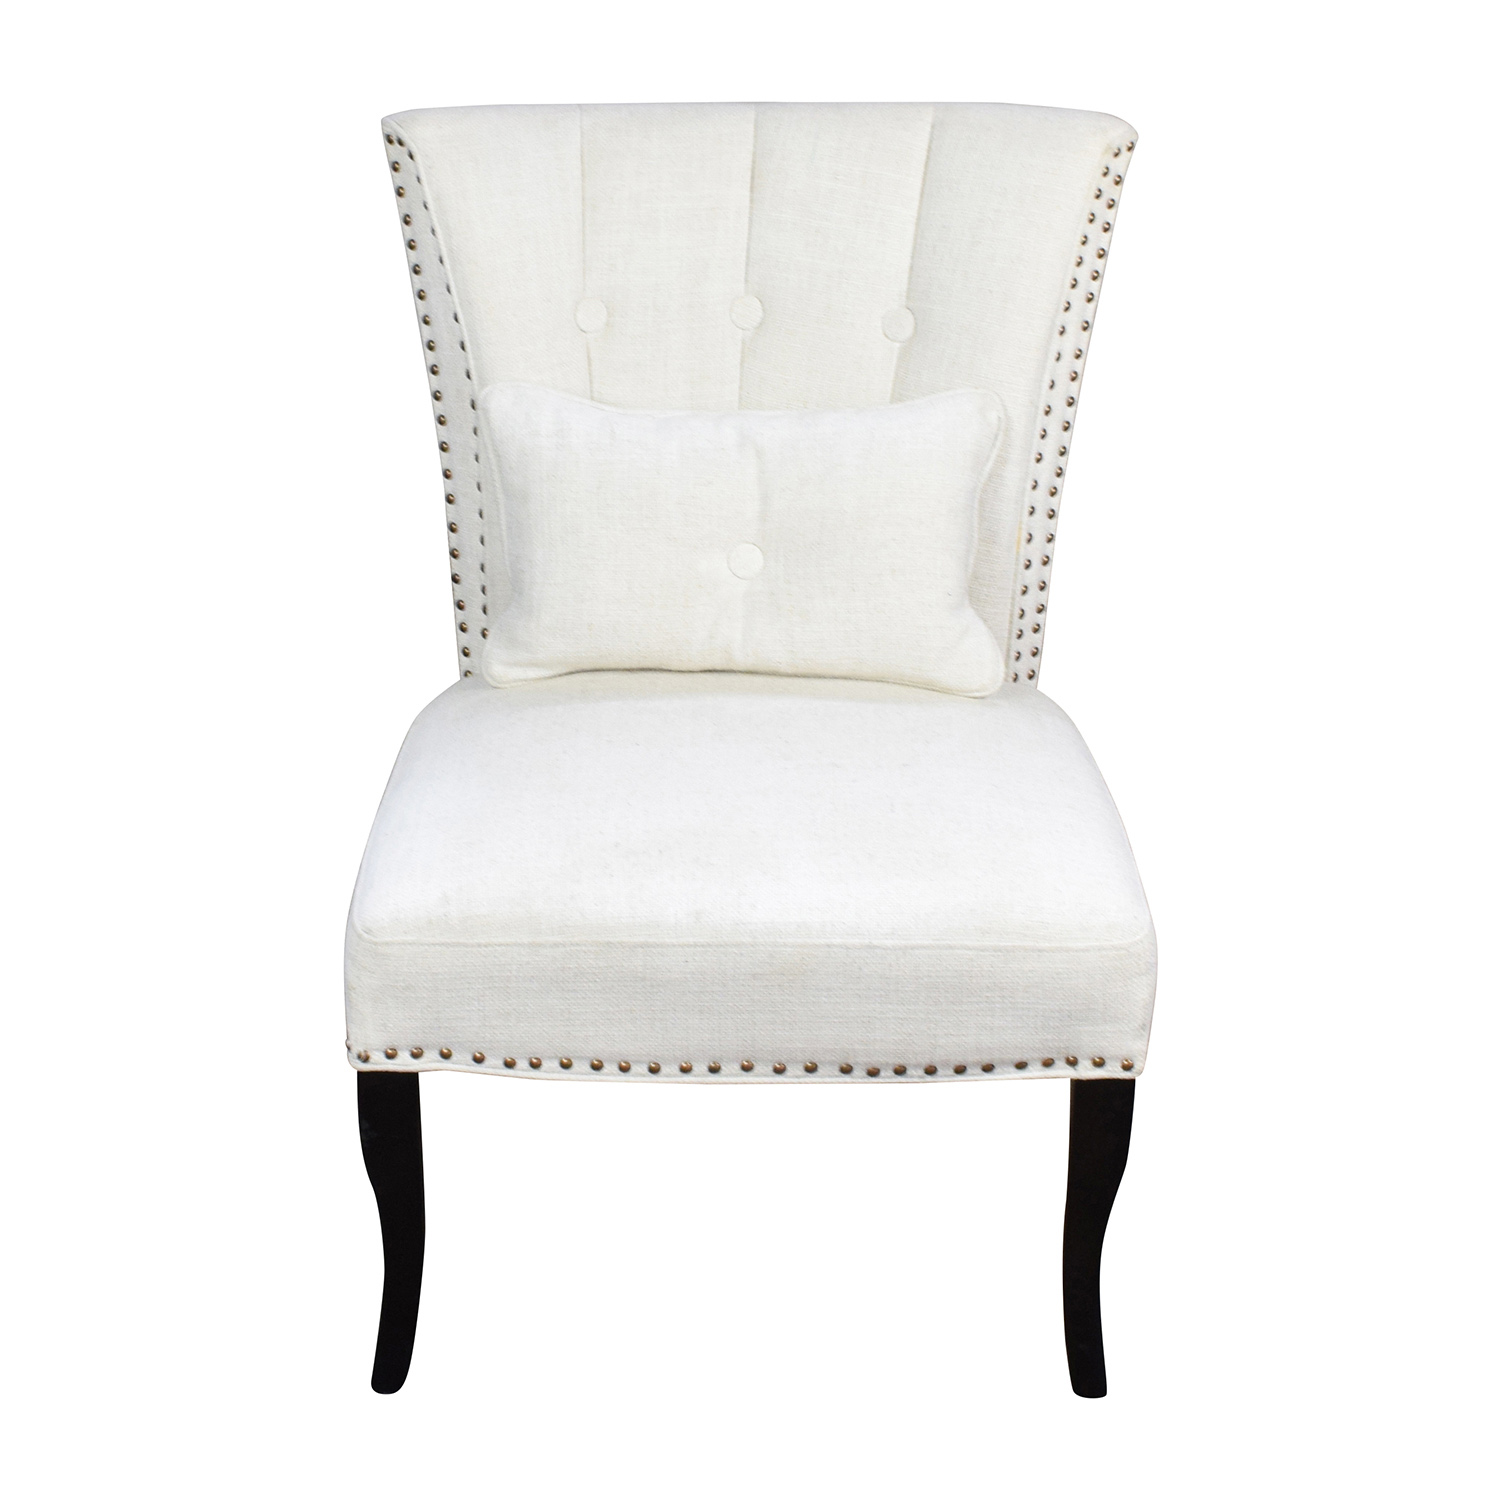 shop White Tufted Accent Chair Unkown